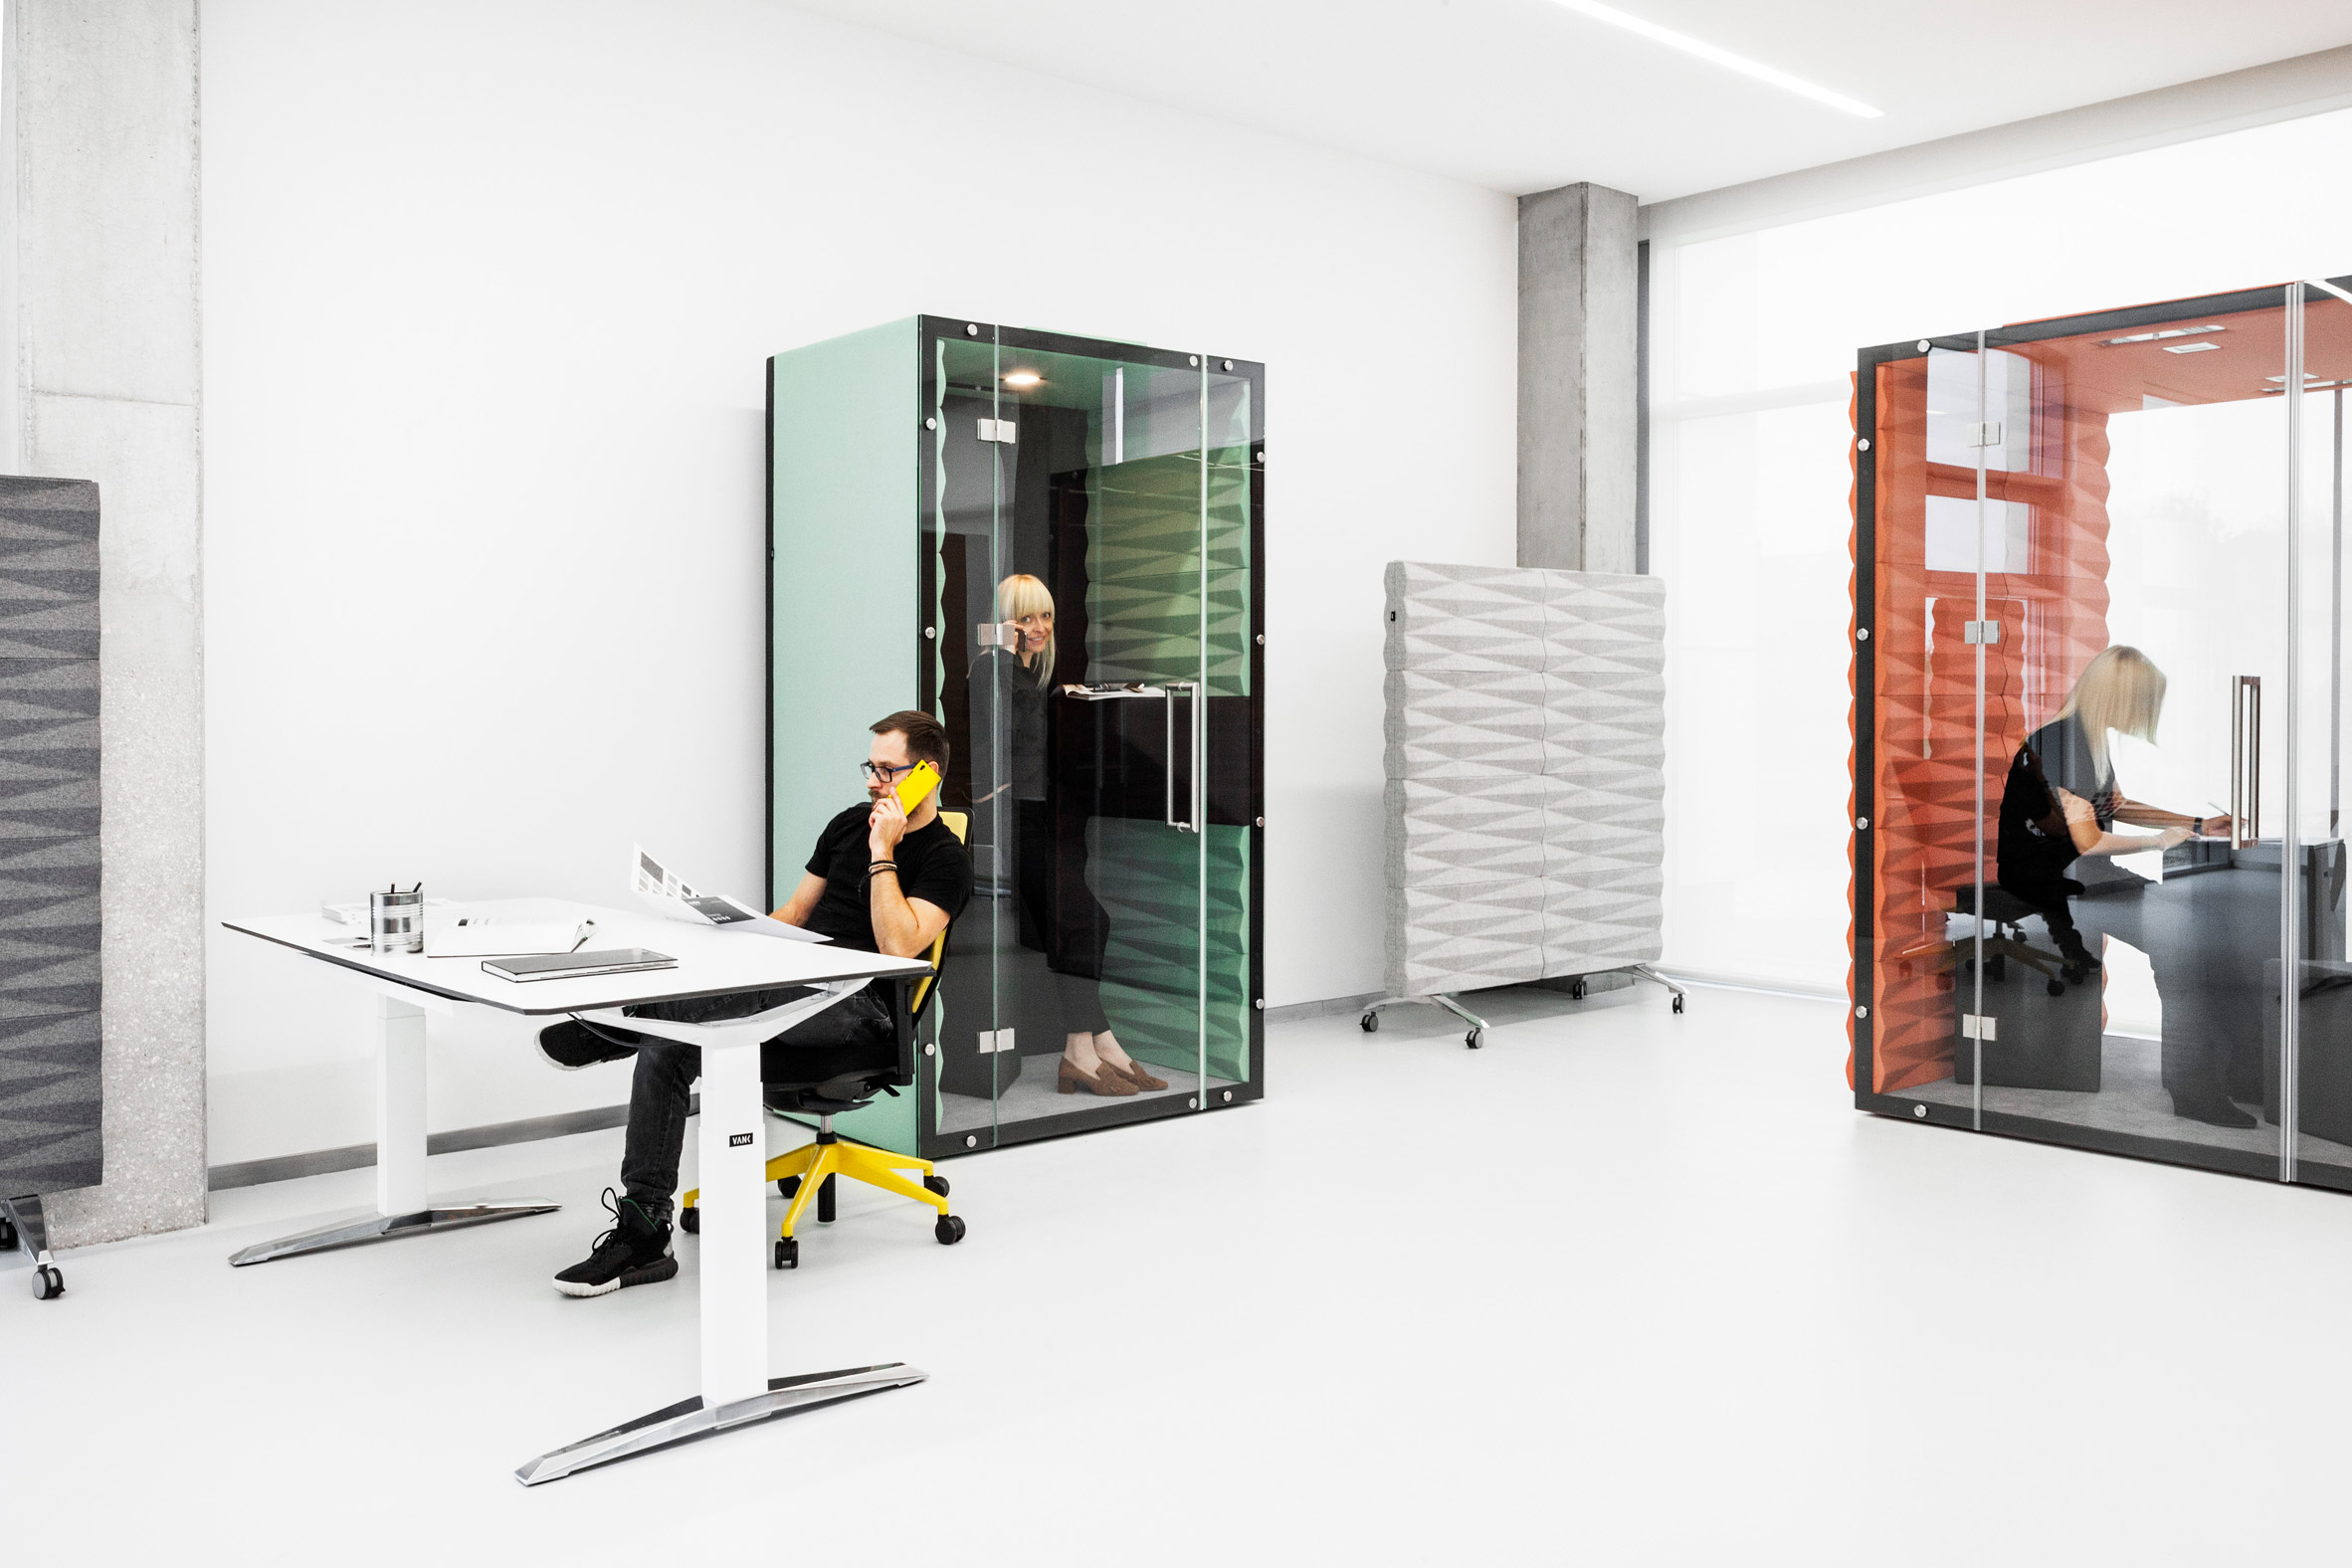 A pod for activity-based working in an open office layout